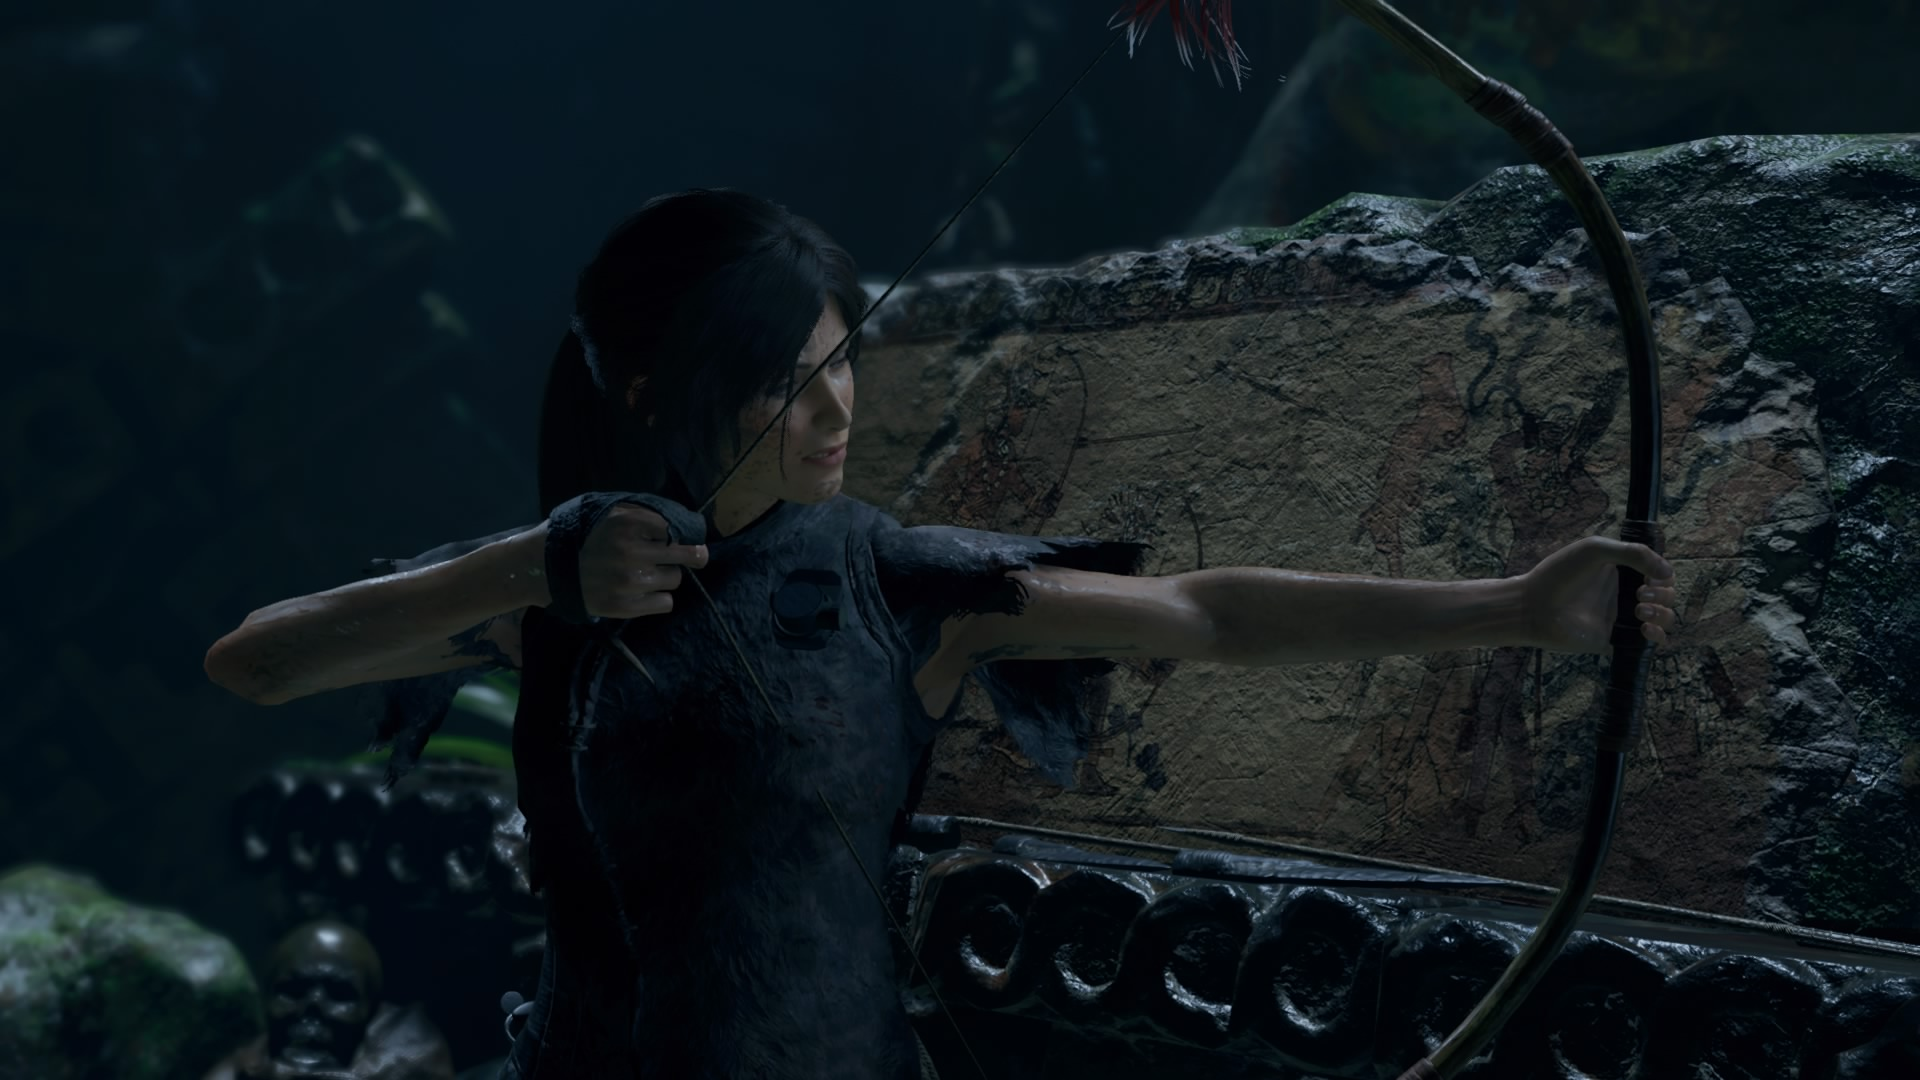 [Análise] Shadow of the Tomb Raider: Vale a Pena? 3